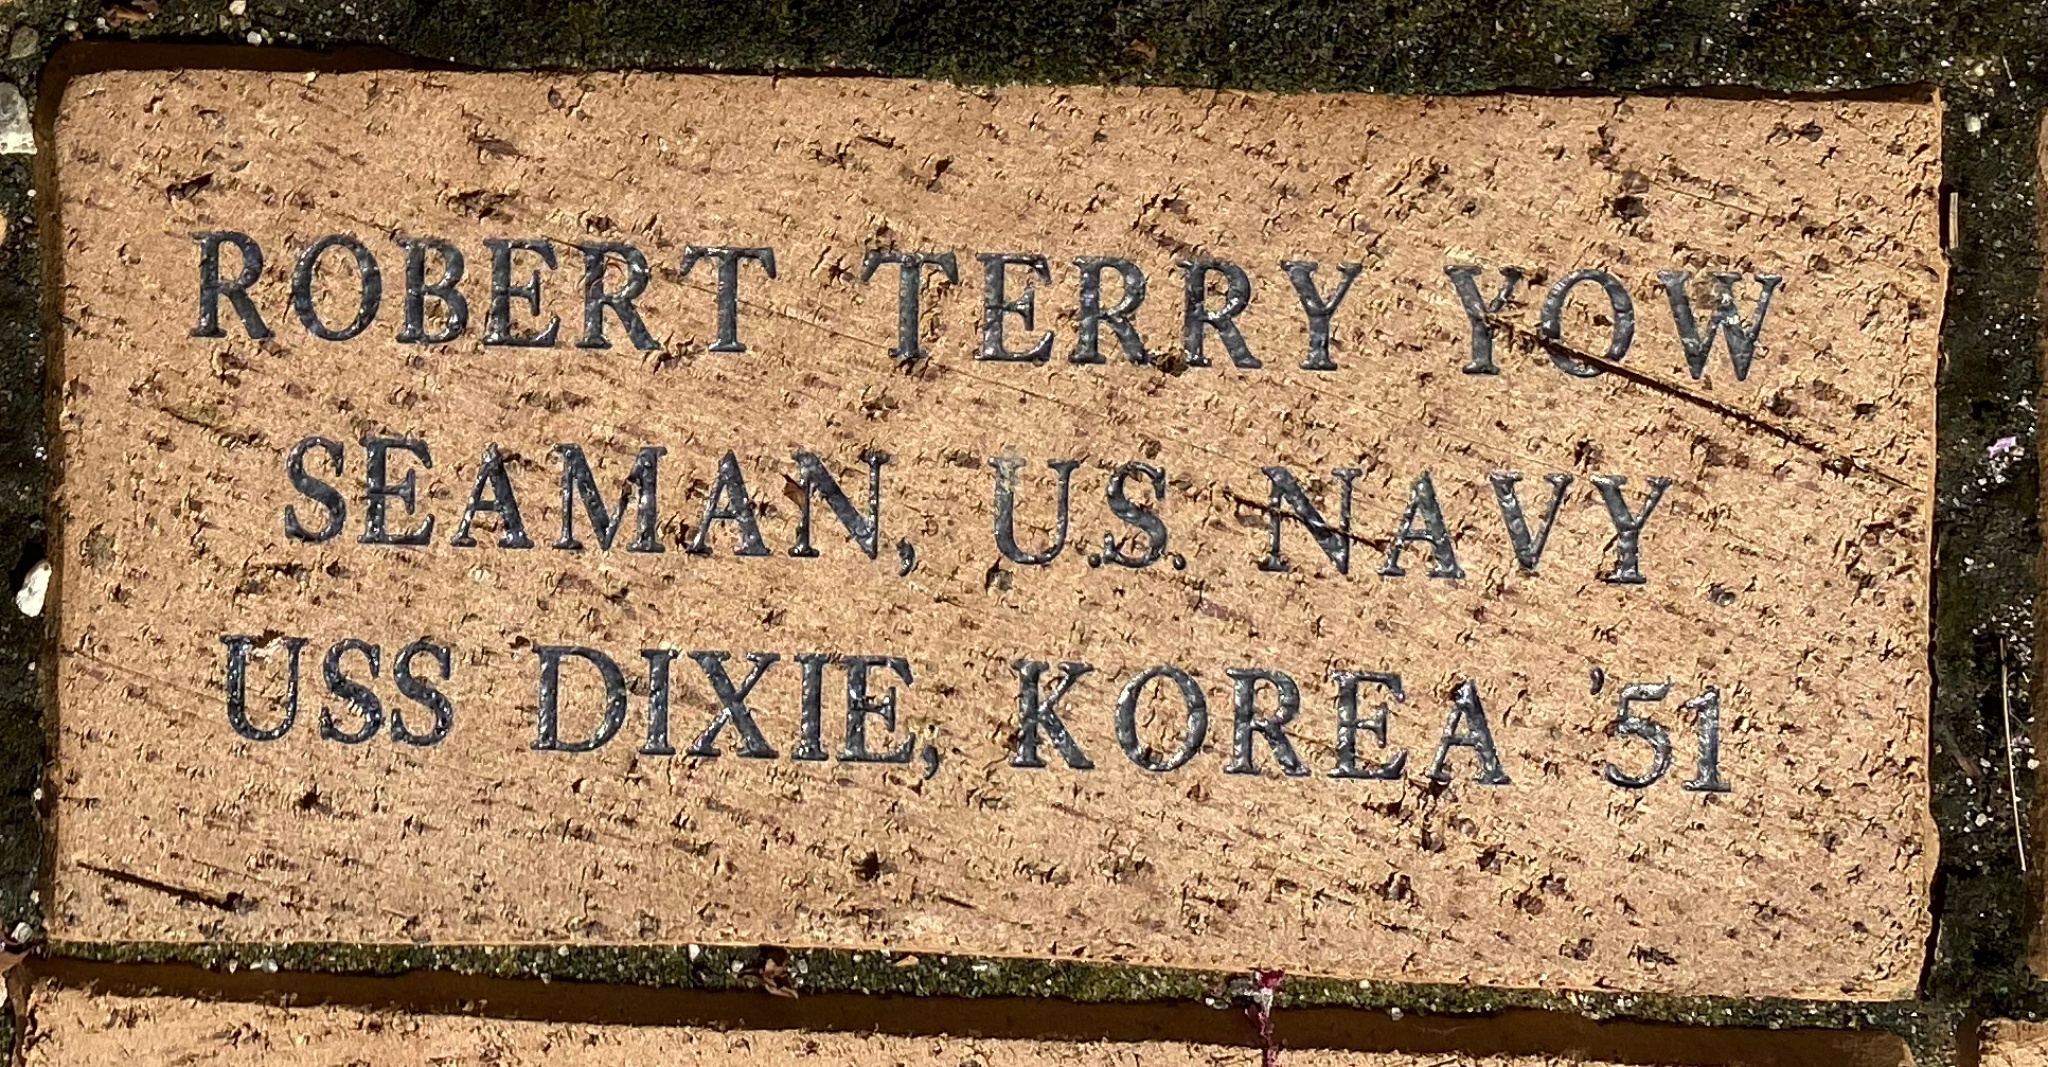 ROBERT TERRY YOW SEAMAN, U.S. NAVY USS DIXIE, KOREA '51